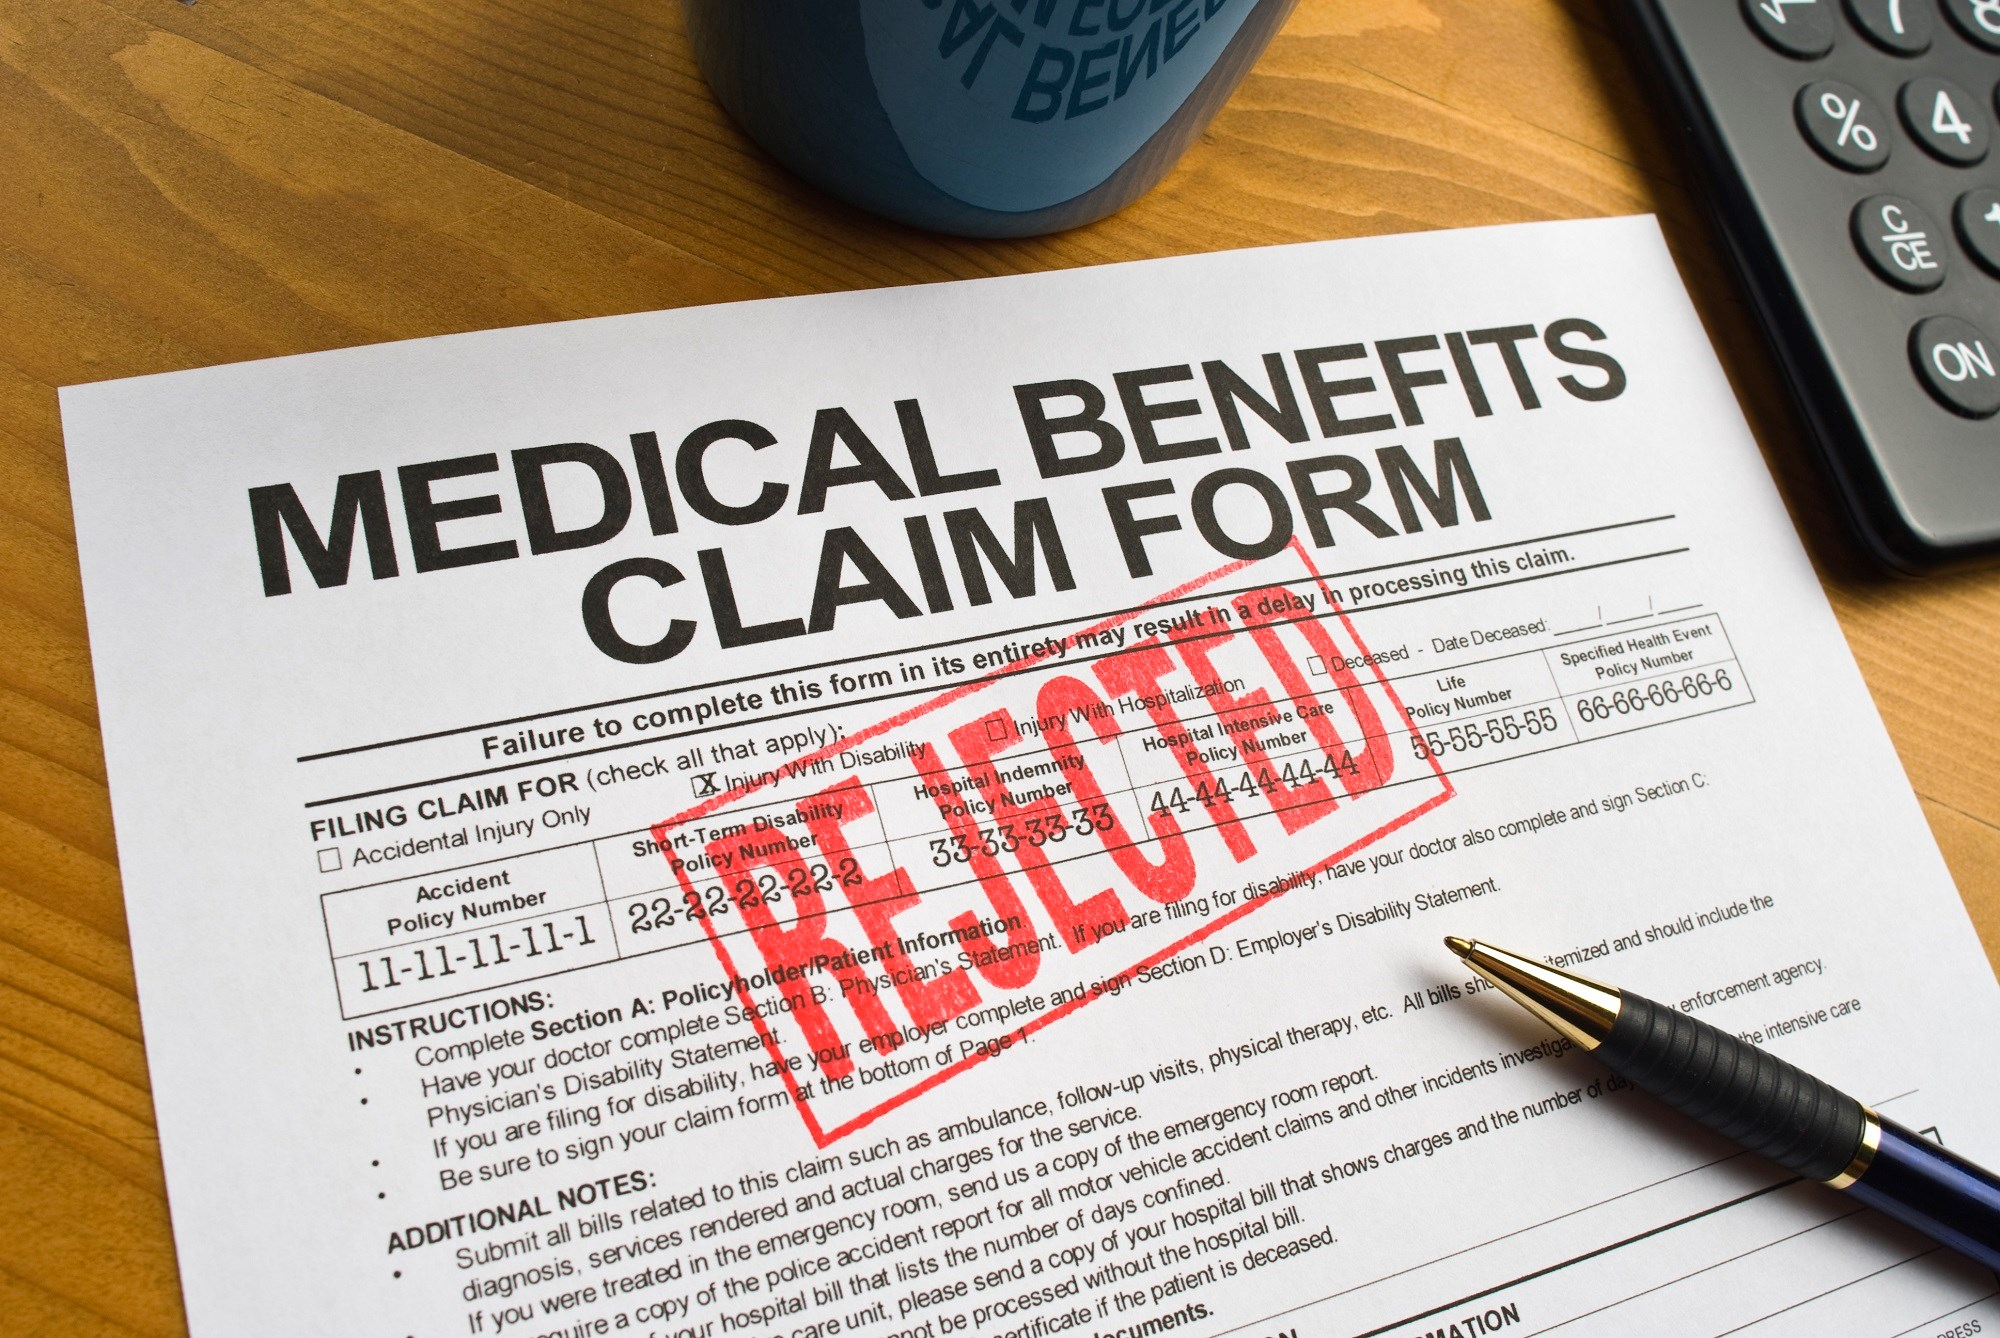 Knowing payer policies and regulatory requirements is critical to appealing denials.